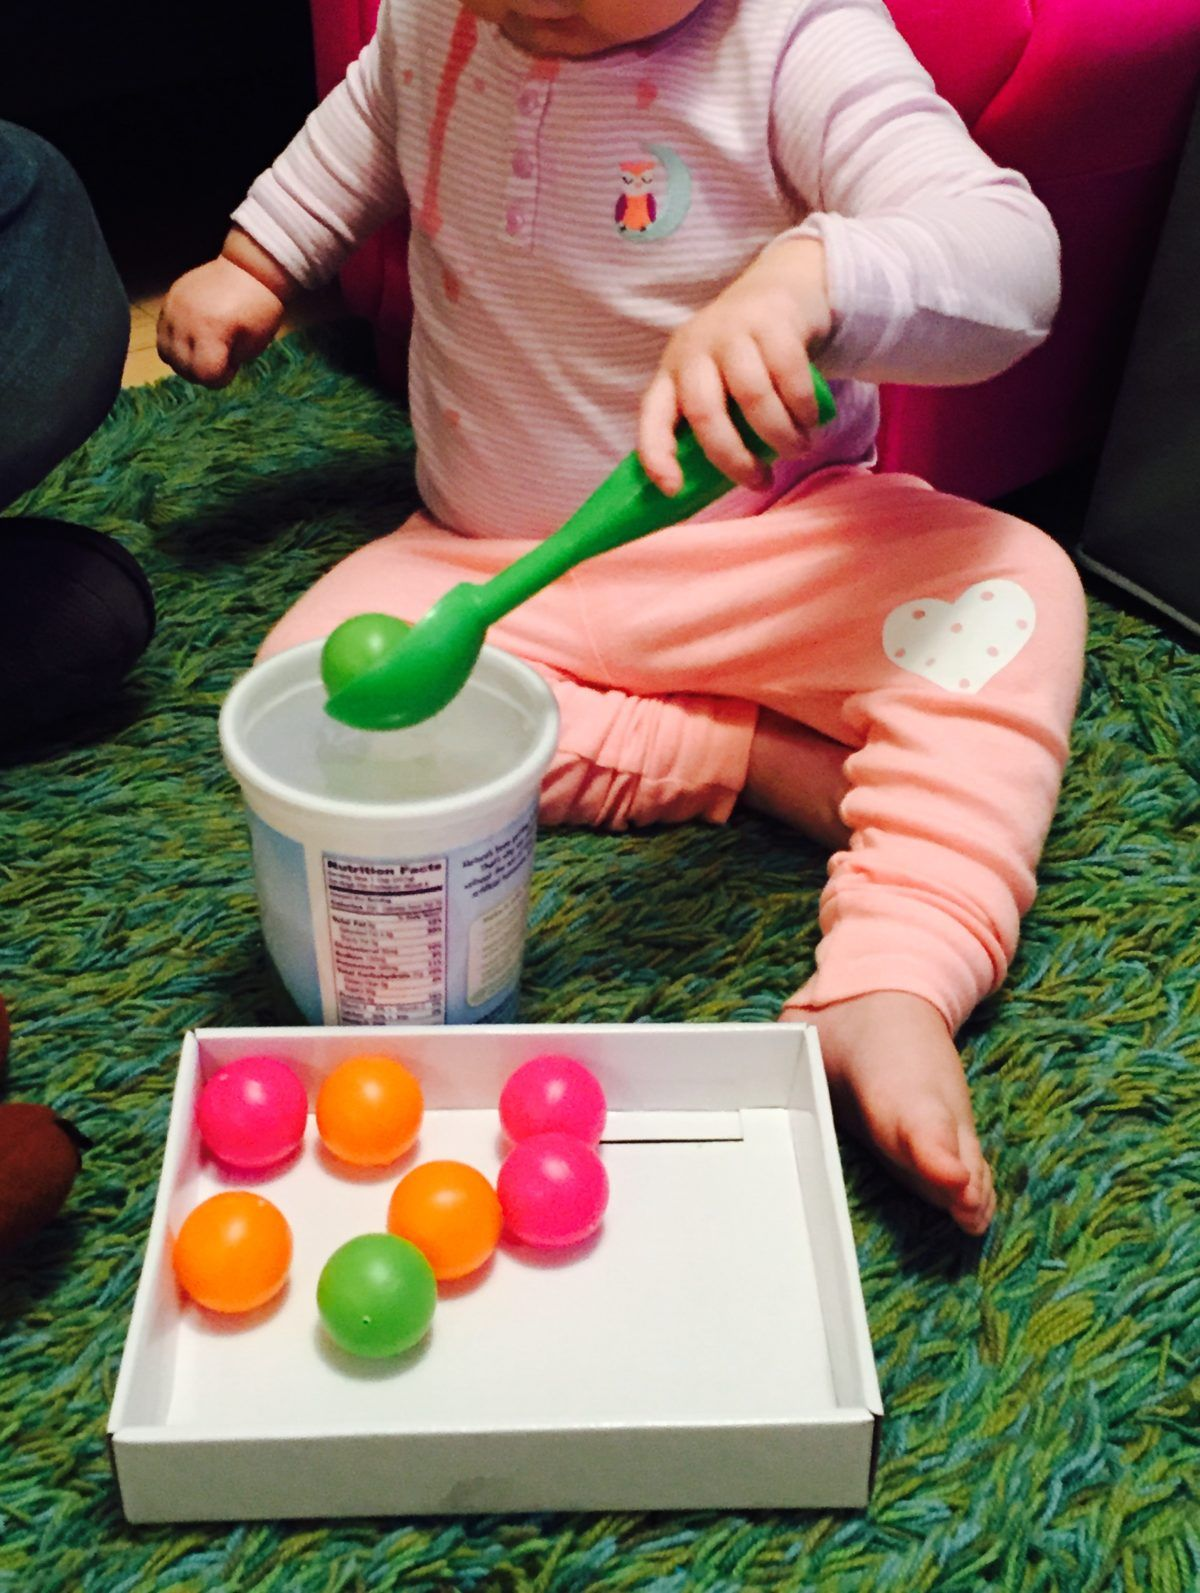 Fine motor transferring with balls a container and an ice cream fine motor transferring with balls a container and an ice cream scoop negle Image collections